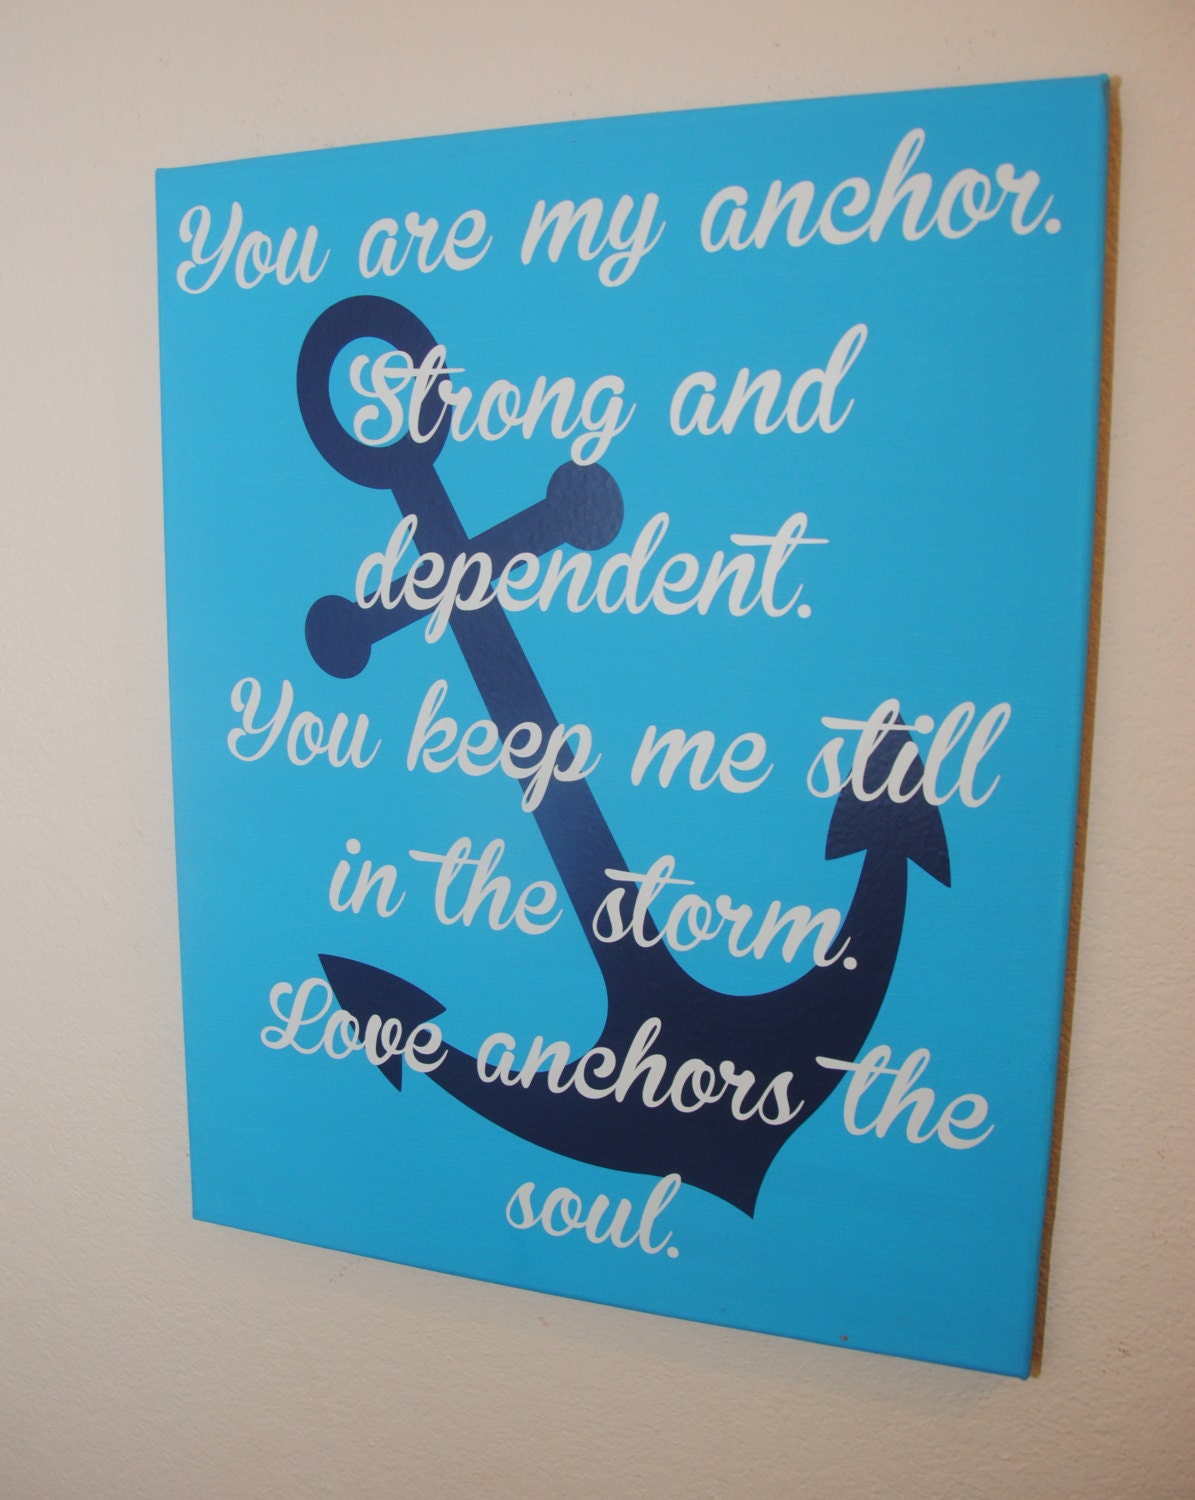 Anchor Love Quotes Delectable Anchor Sign Anchor Love Sign Inspirational Gift Ou Are